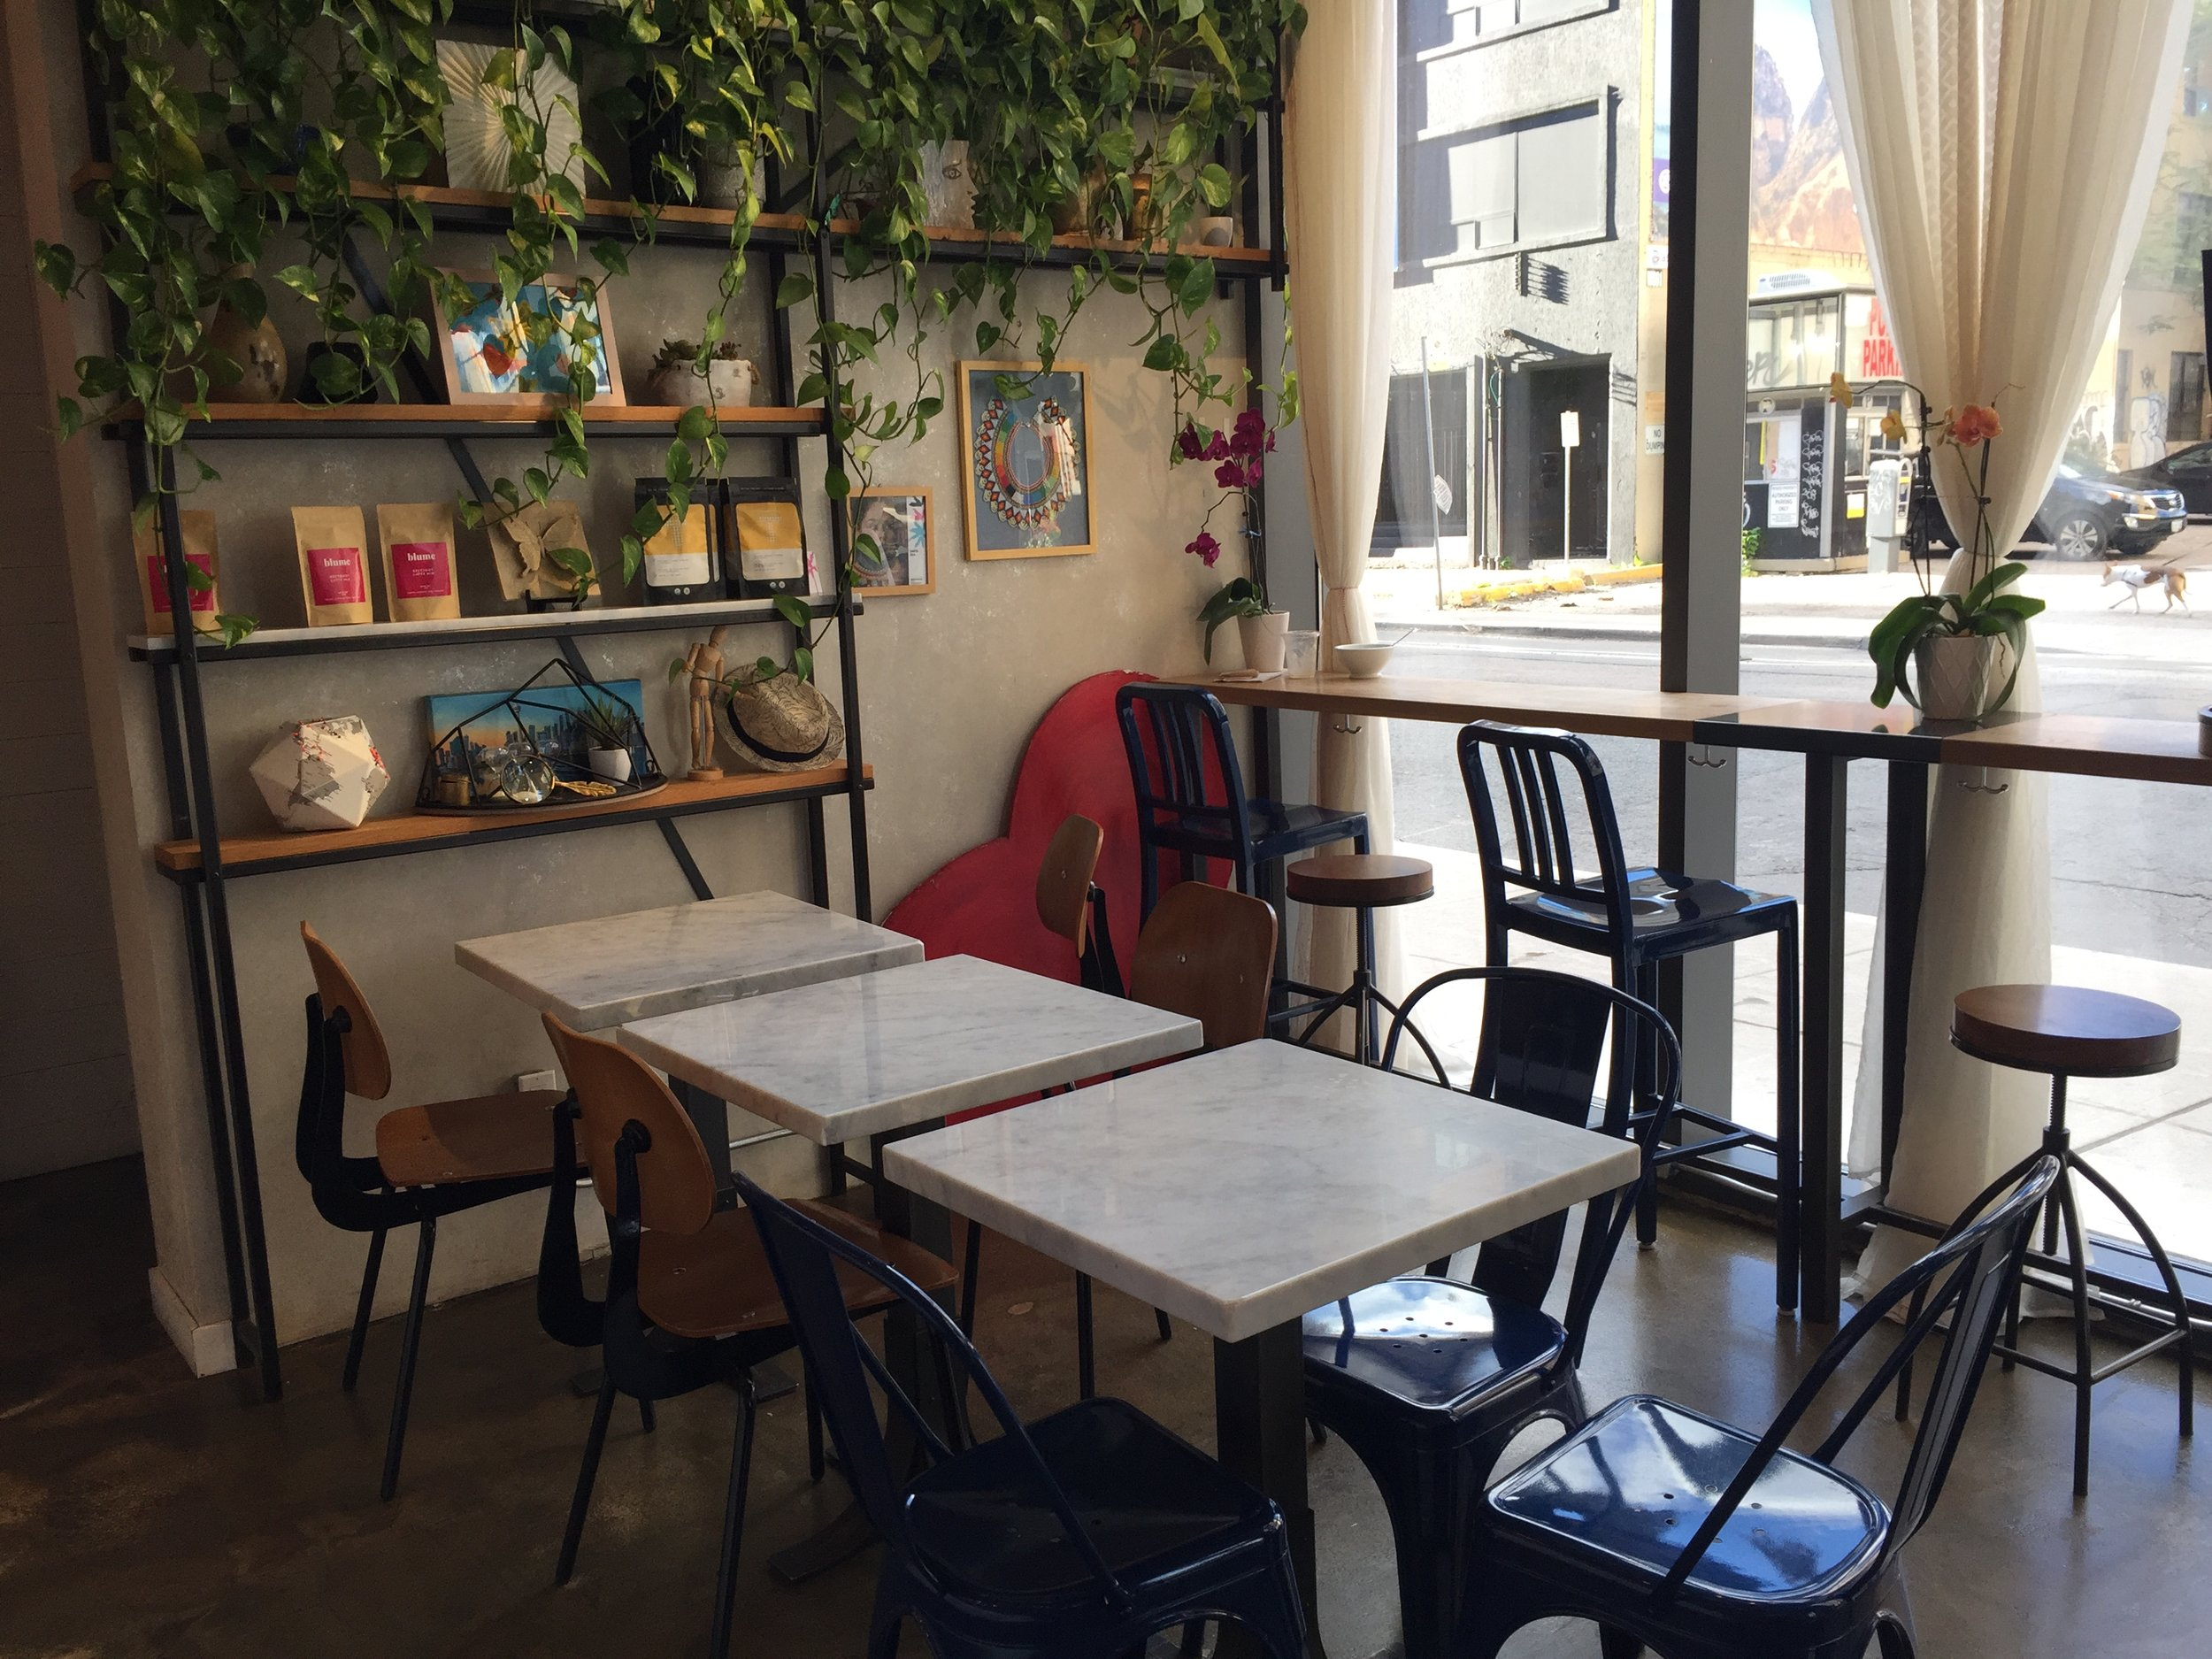 Picture of standard height tables in the alternative cafe